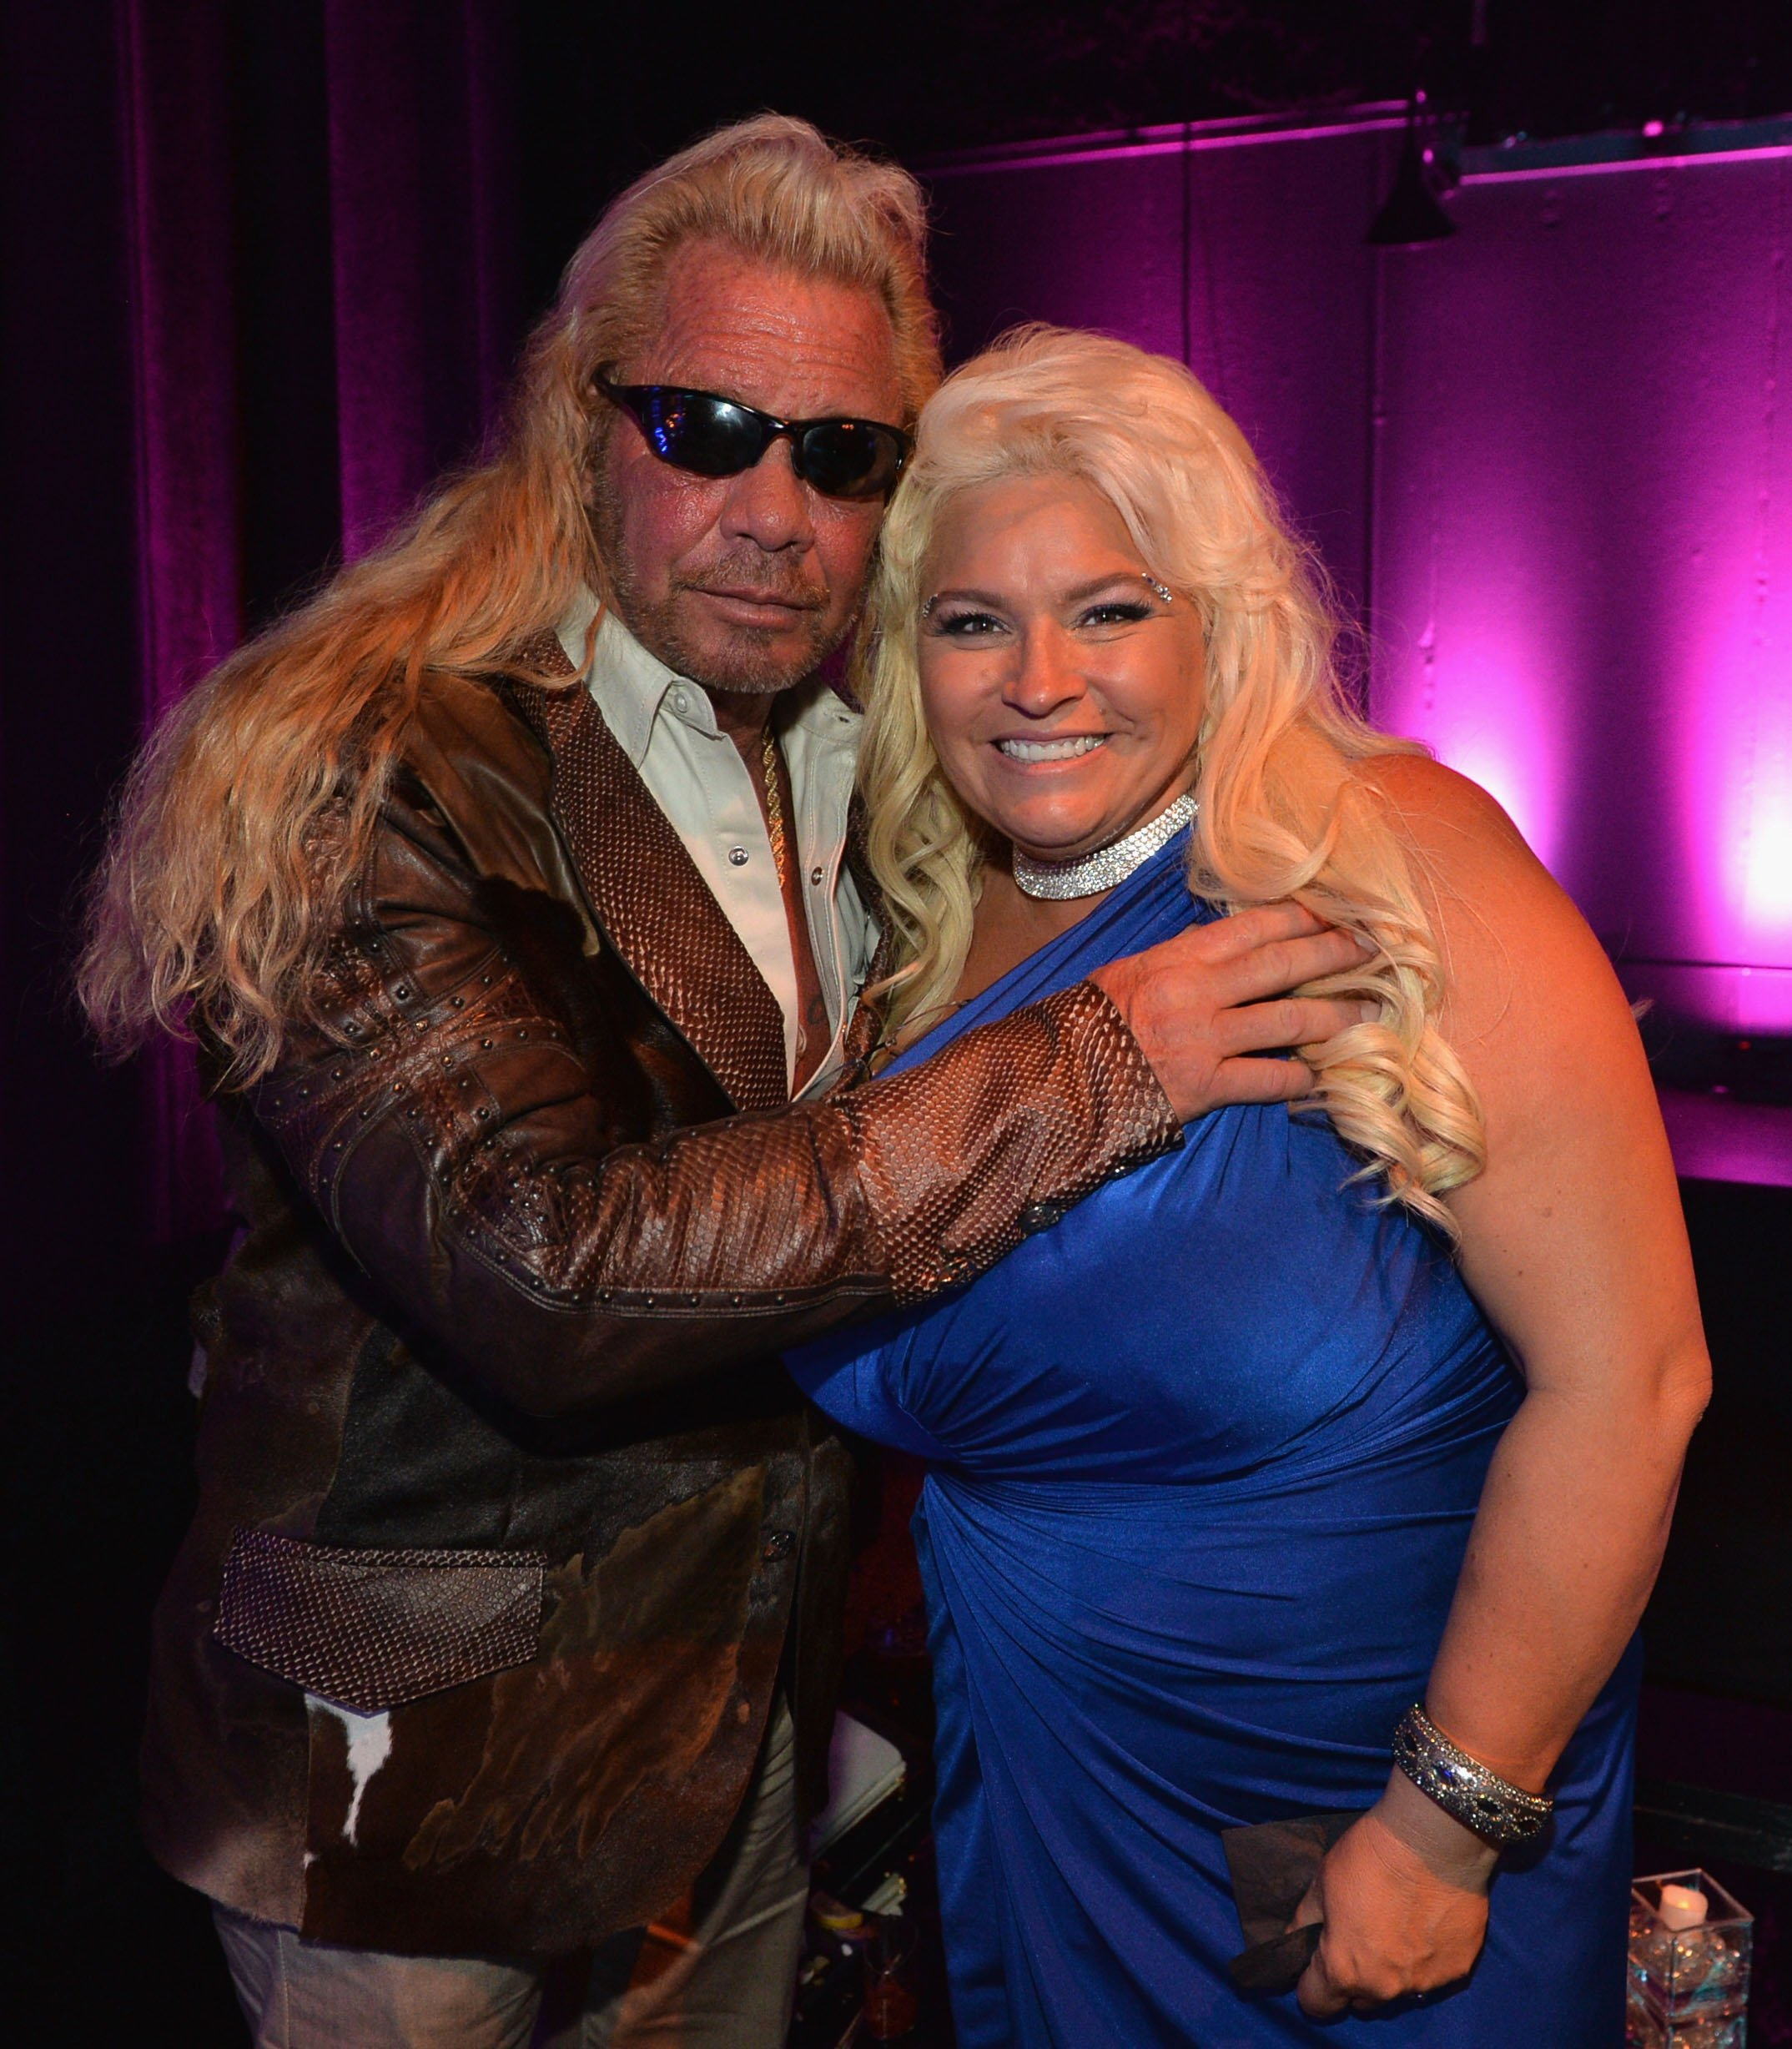 Duane 'Dog' and Beth Chapman at the 2013 CMT Music Awards - After Party at Rocketown on June 5, 2013 in Nashville, Tennessee | Photo: Getty Images